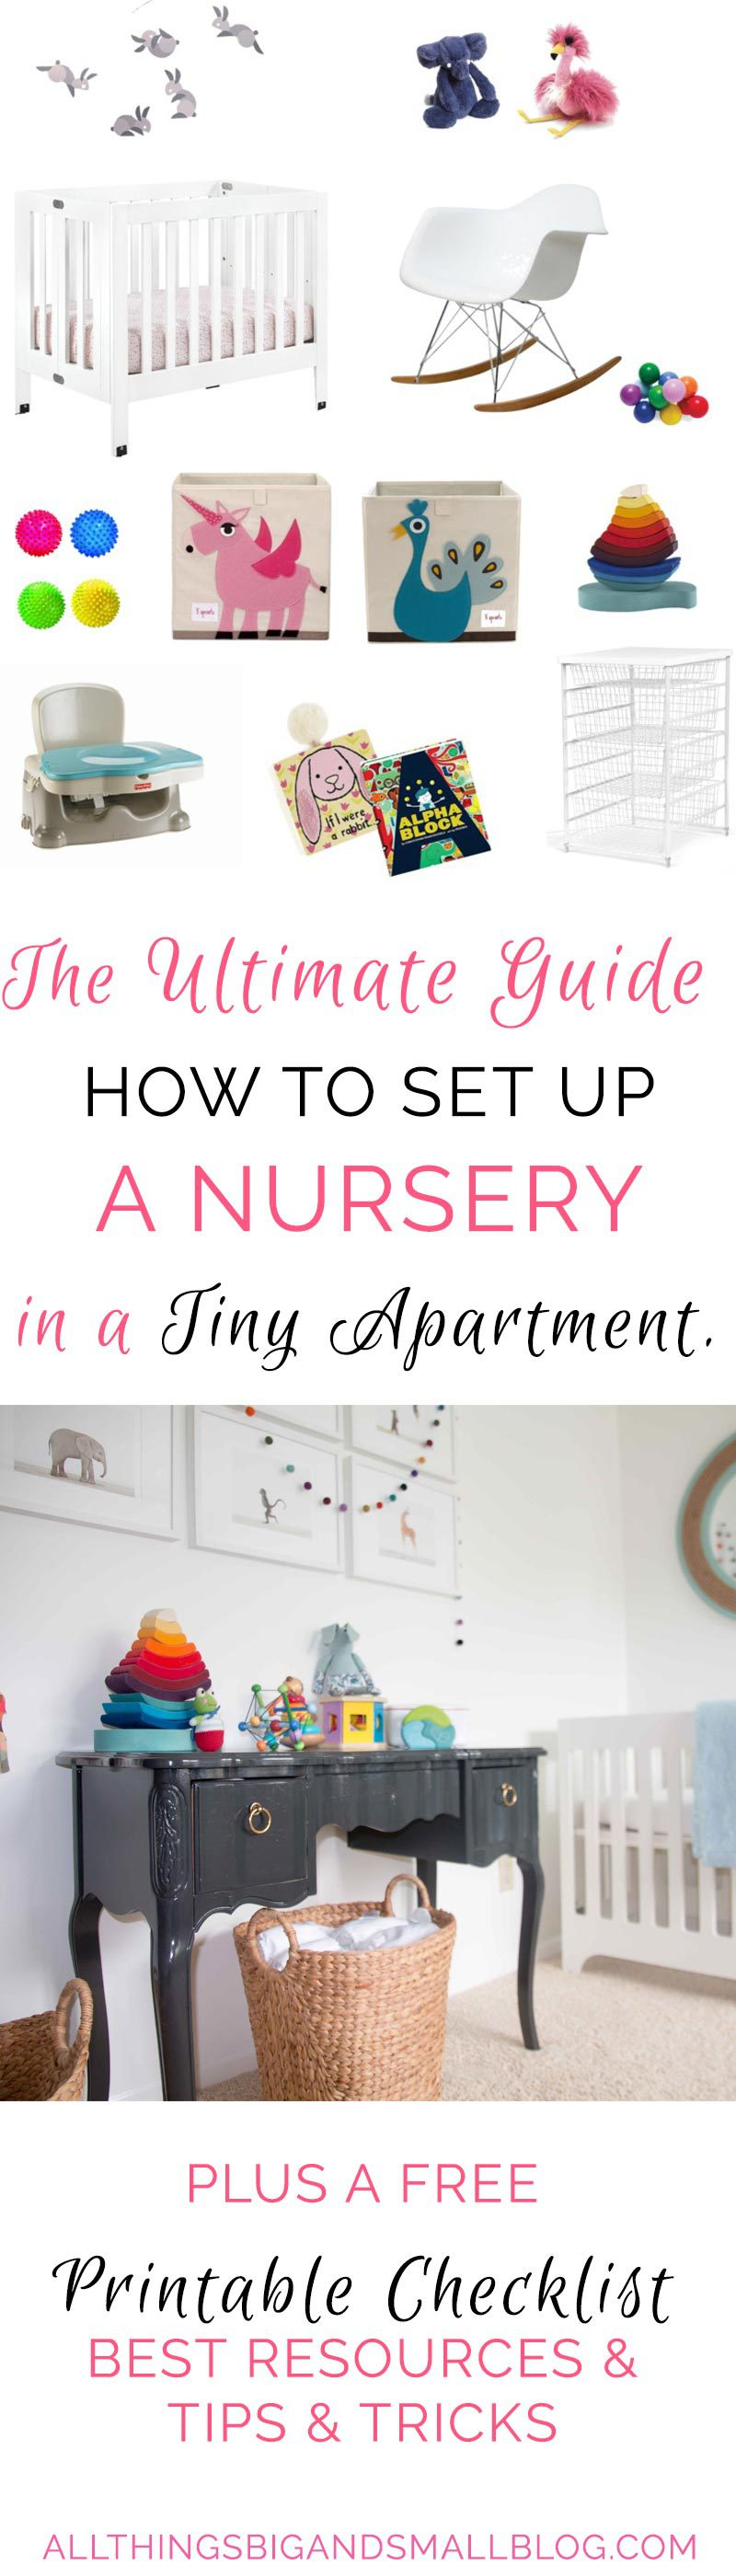 how to set up a nursery in a small room | small nursery | The Ultimate Guide: Small Space Living with a Baby by popular home decor blogger DIY Decor Mom